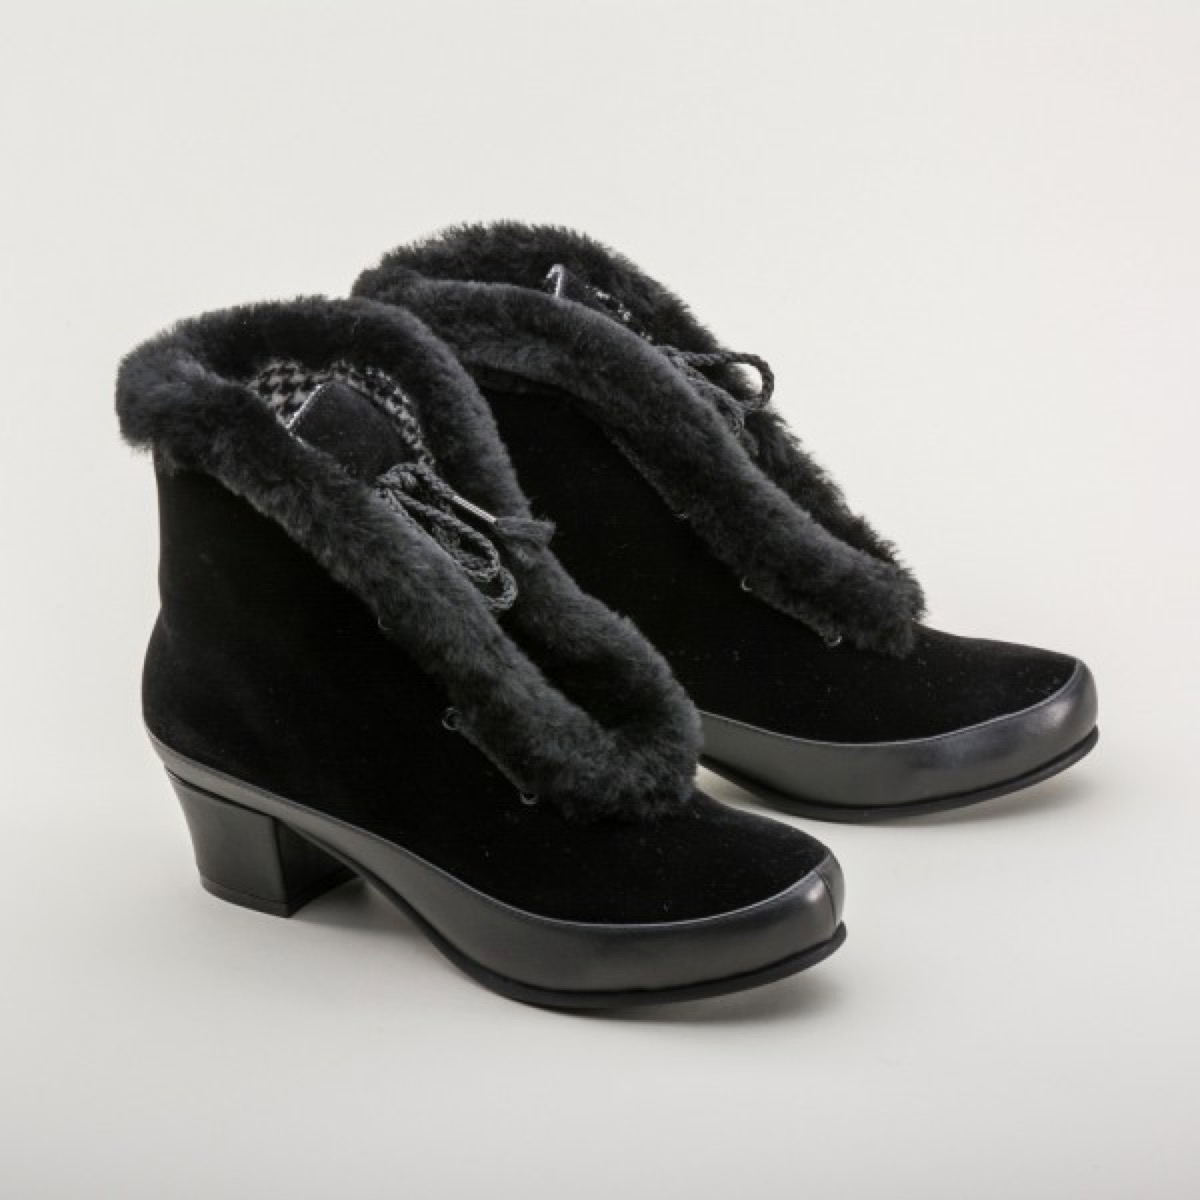 1940s-Winter-Boots